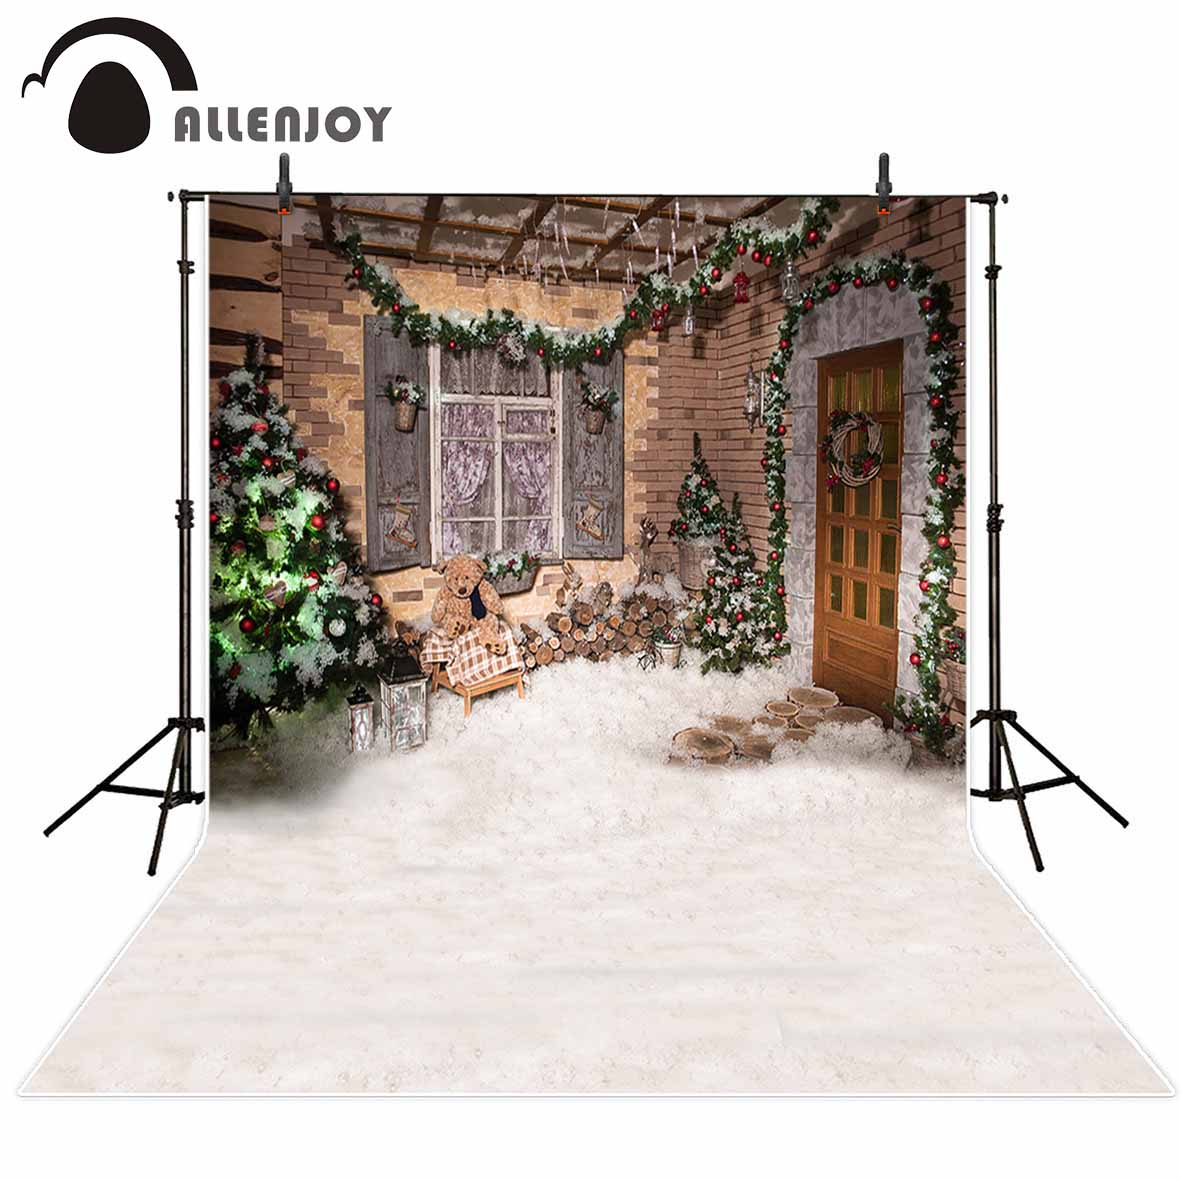 Allenjoy photography backdrop Snow winter house Christmas tree party children new background photocall customize photo printed allenjoy background photography winter snow tree white bokeh christmas backdrop nature photocall prop customize original design